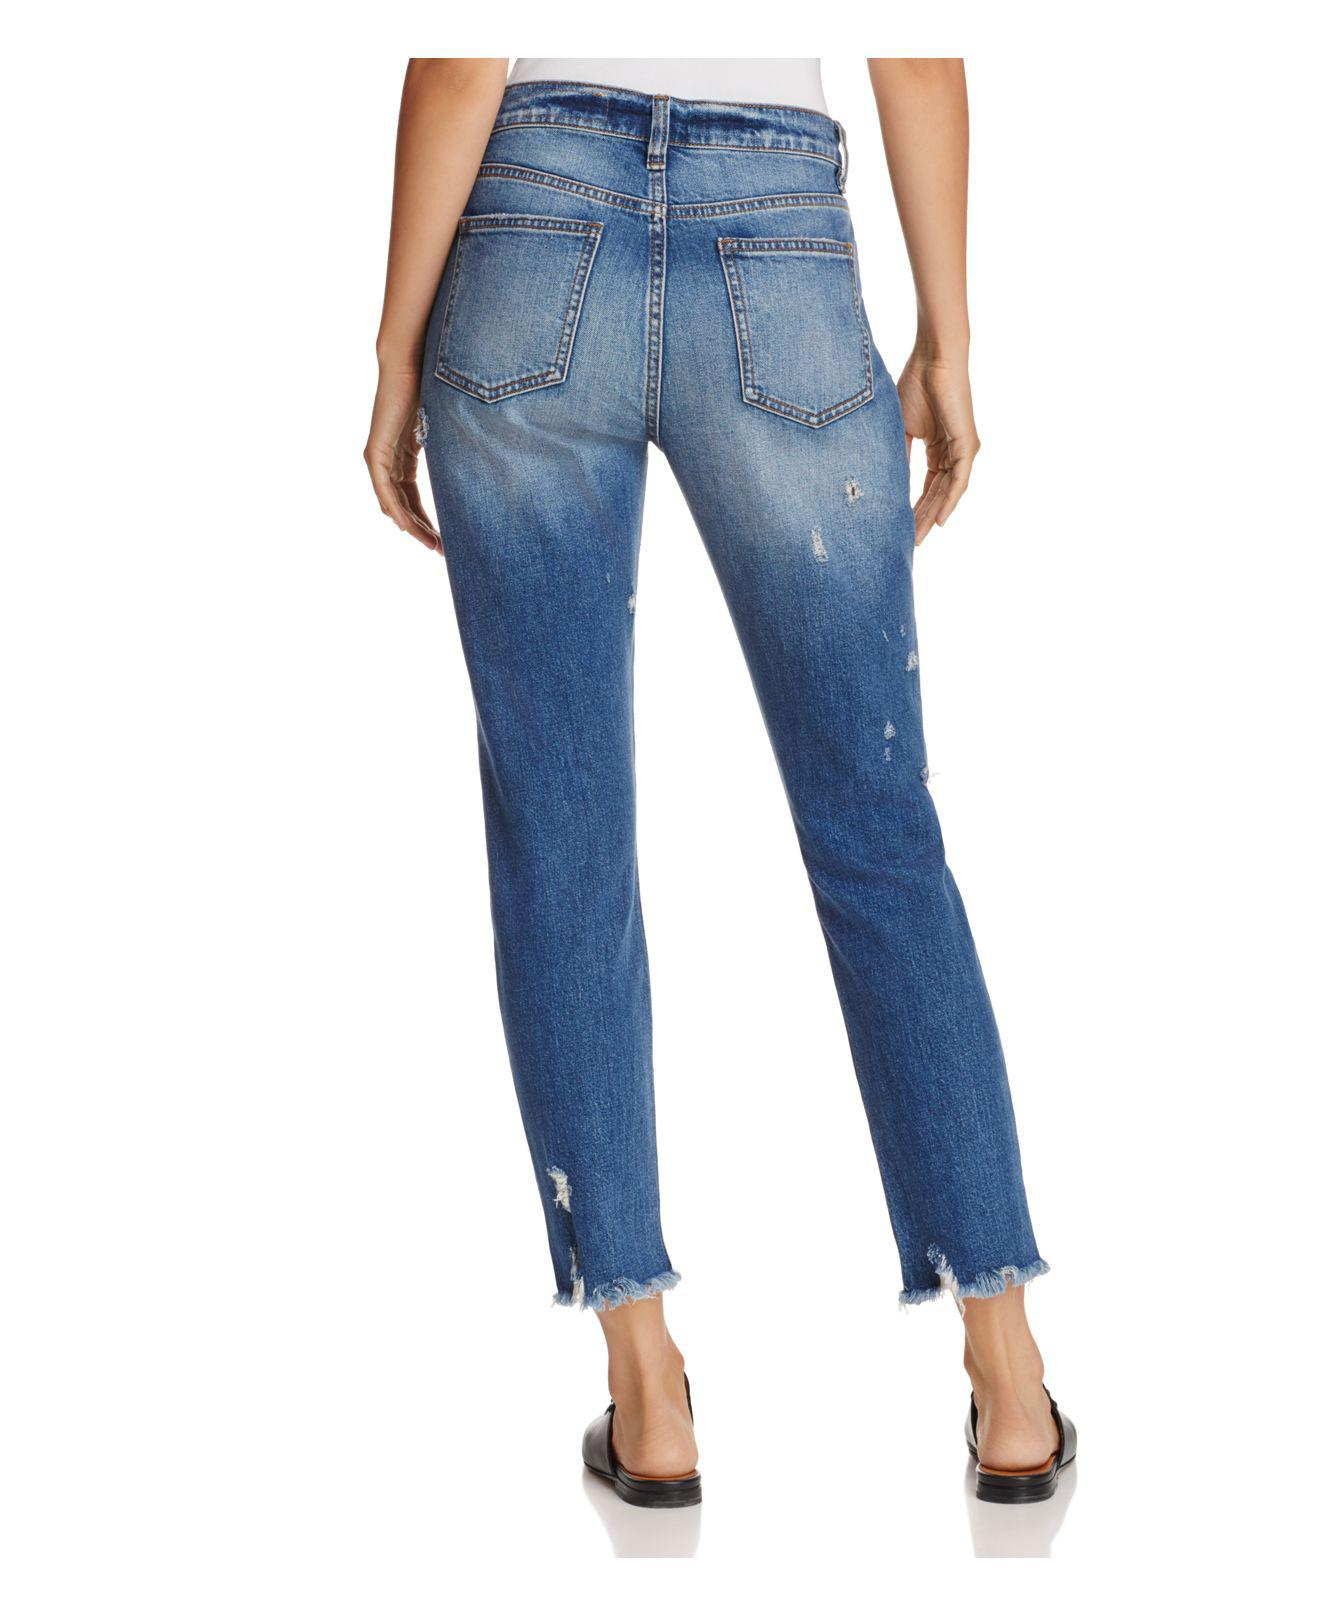 Pistola Denim Nico Distressed High-rise Skinny Jeans In Bulletproof in Blue